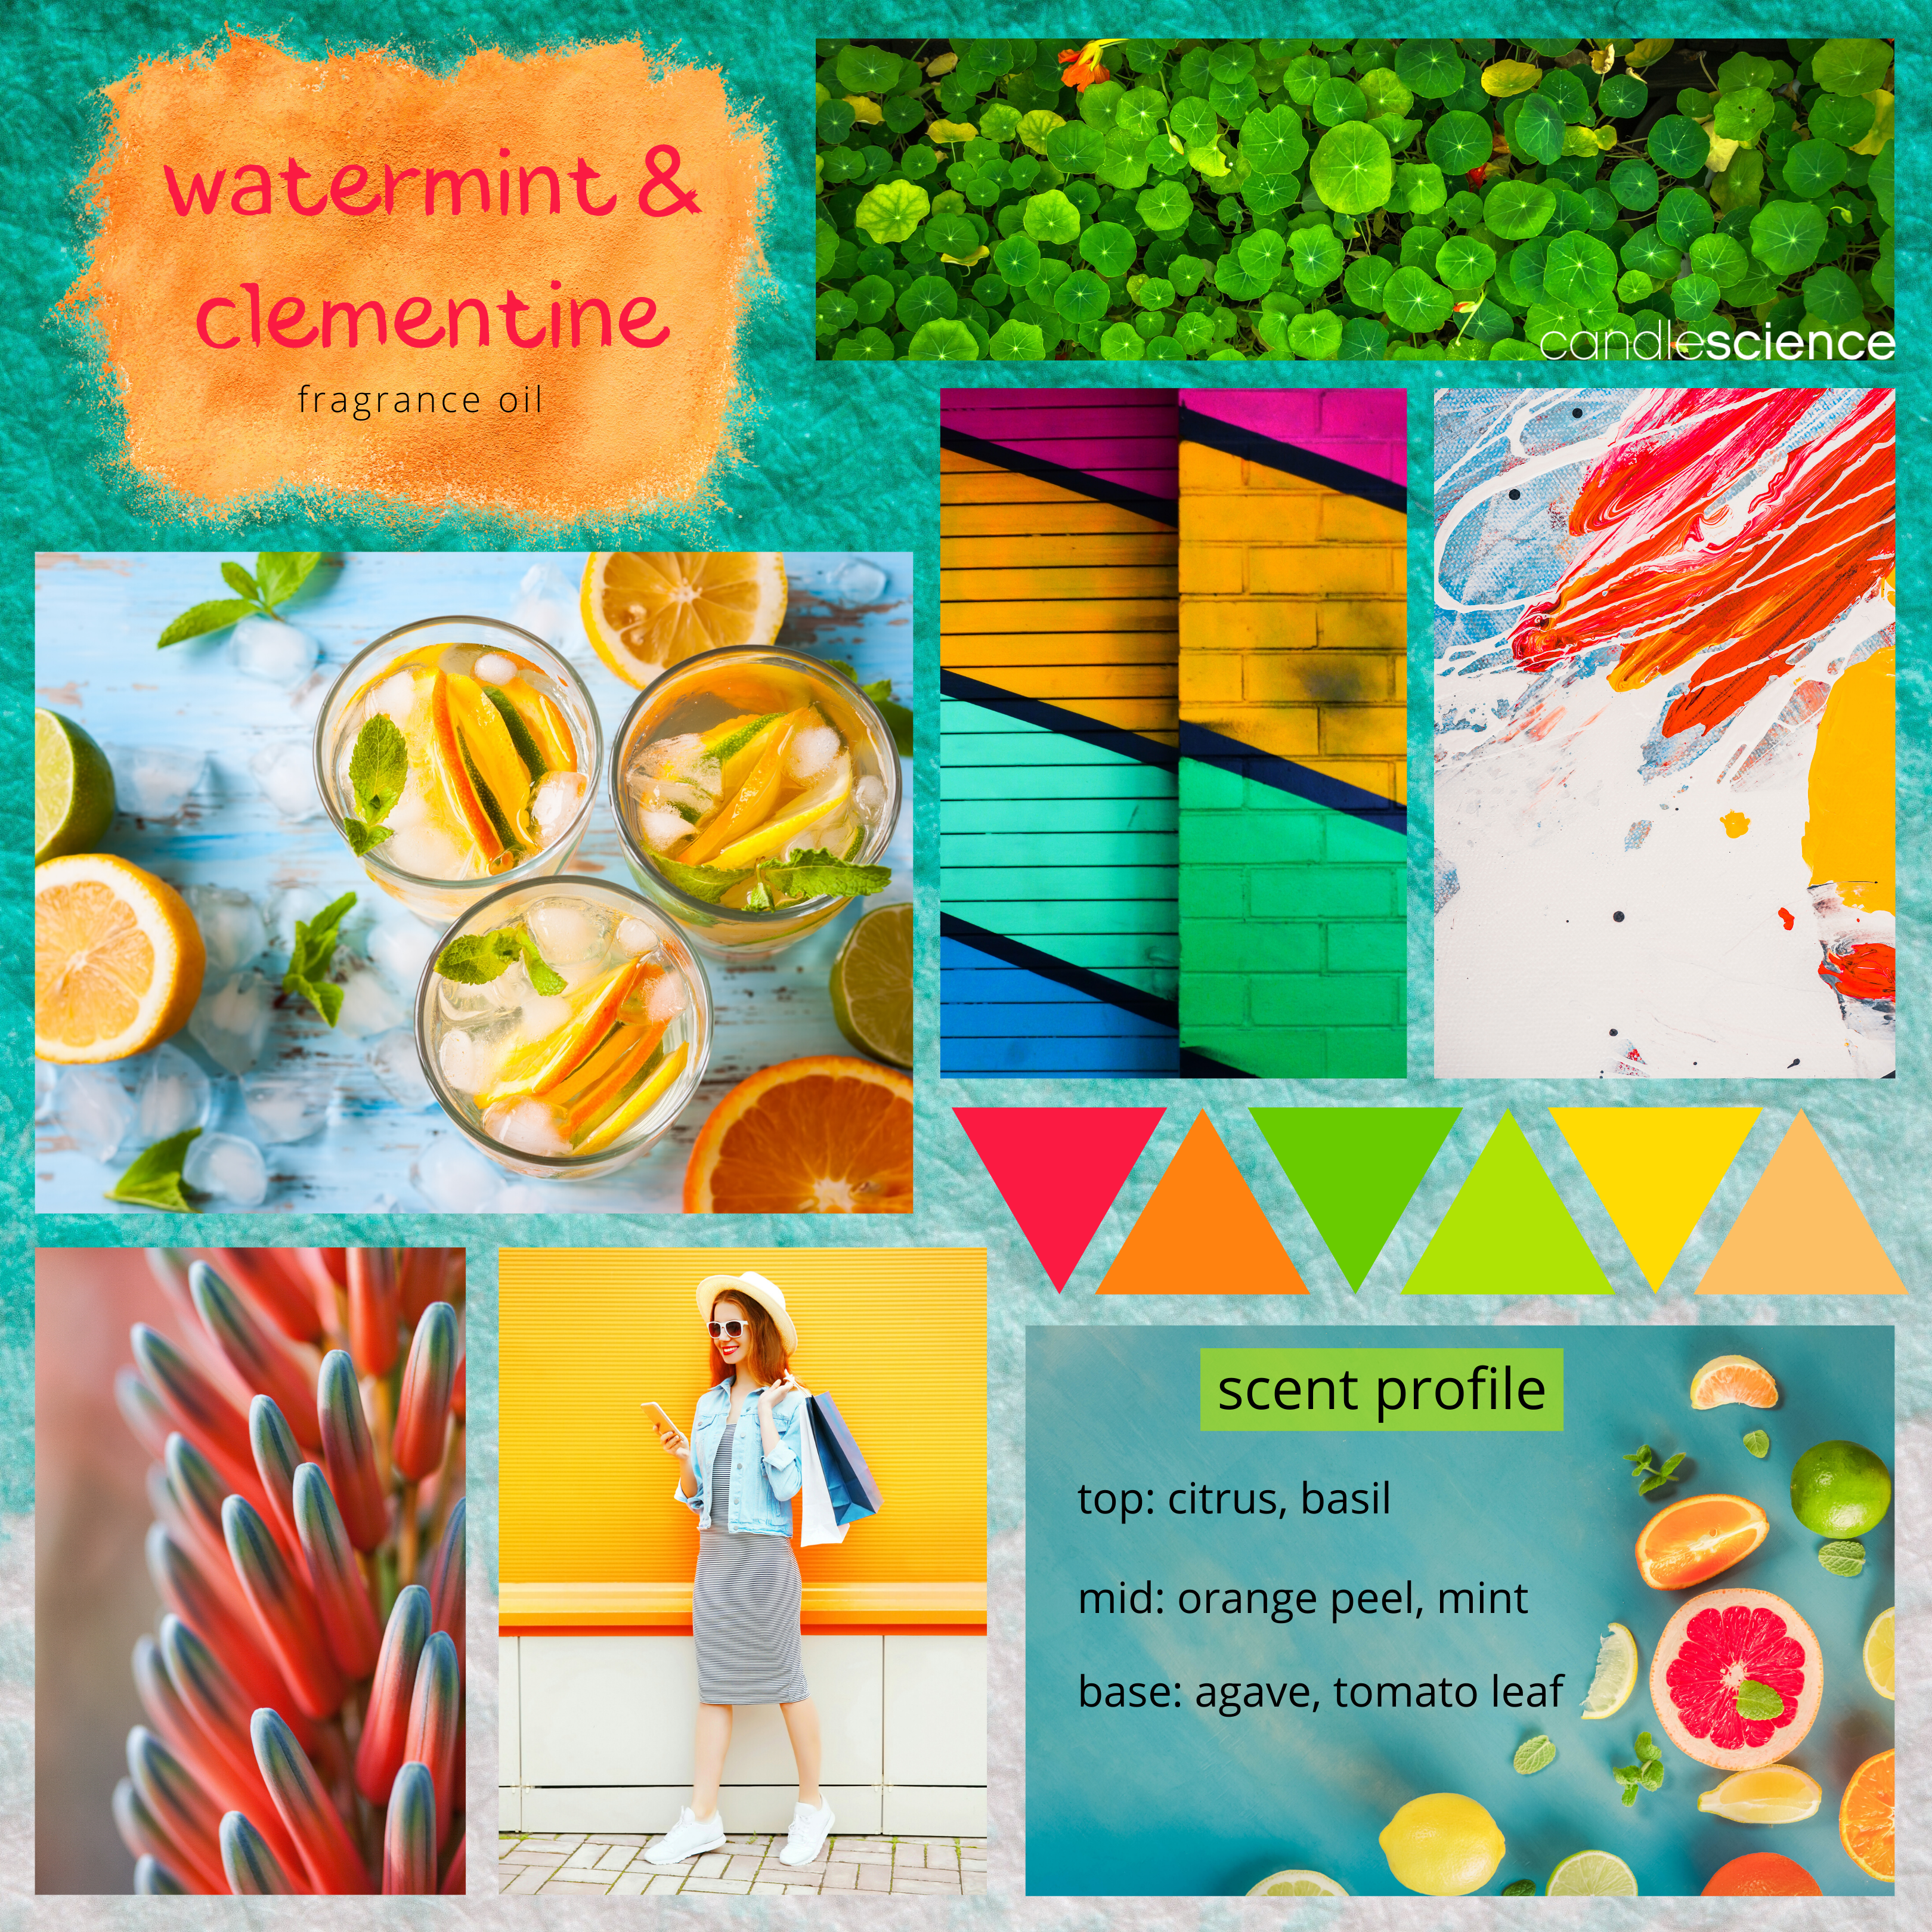 Watermint and Clementine fragrance oil mood board